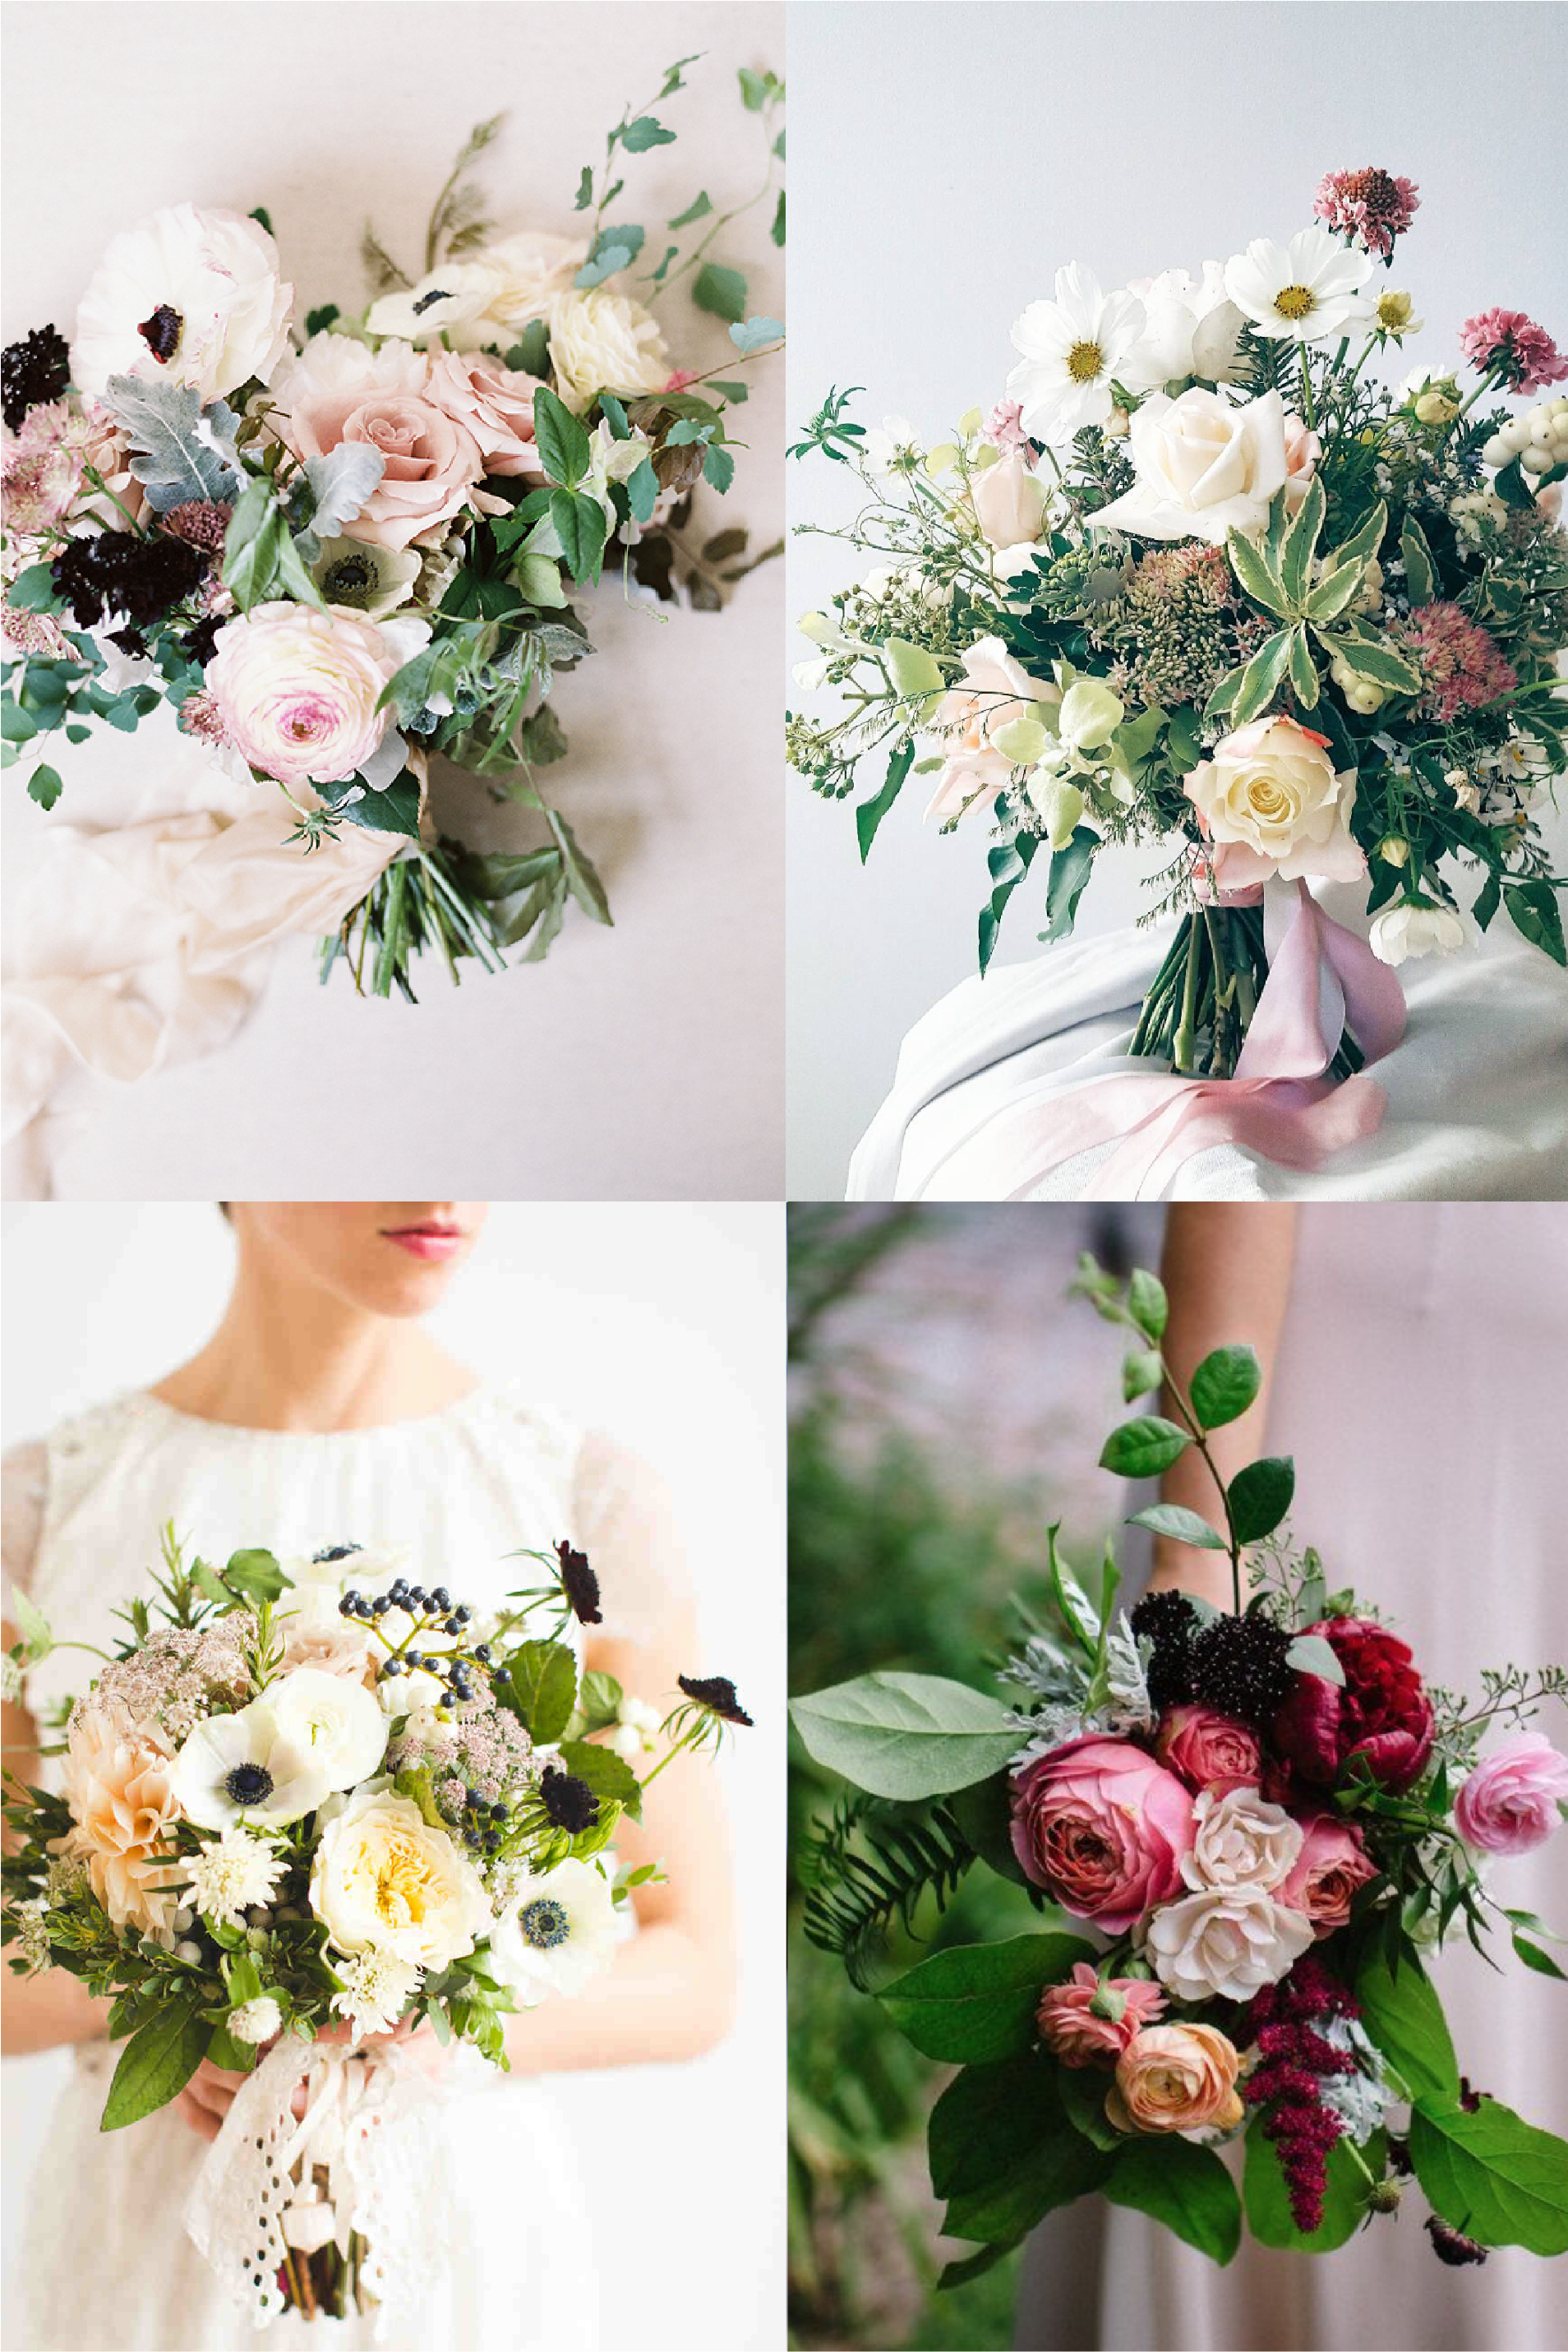 FROM CLOCKWISE, FROM TOP LEFT:  FLOWERS BY  NEW CREATIONS FLOWER CO.  PHOTO BY  ALLISON KUHN PHOTOGRAPHY  ;  FLOWERS BY  LIME TREE BOWER ; FLOWERS BY  VELVET AND TWINE  ; FLOWERS BY   BLOMMA FLORAL AND DESIGN  AND PHOTO BY REBECCA WOOD.